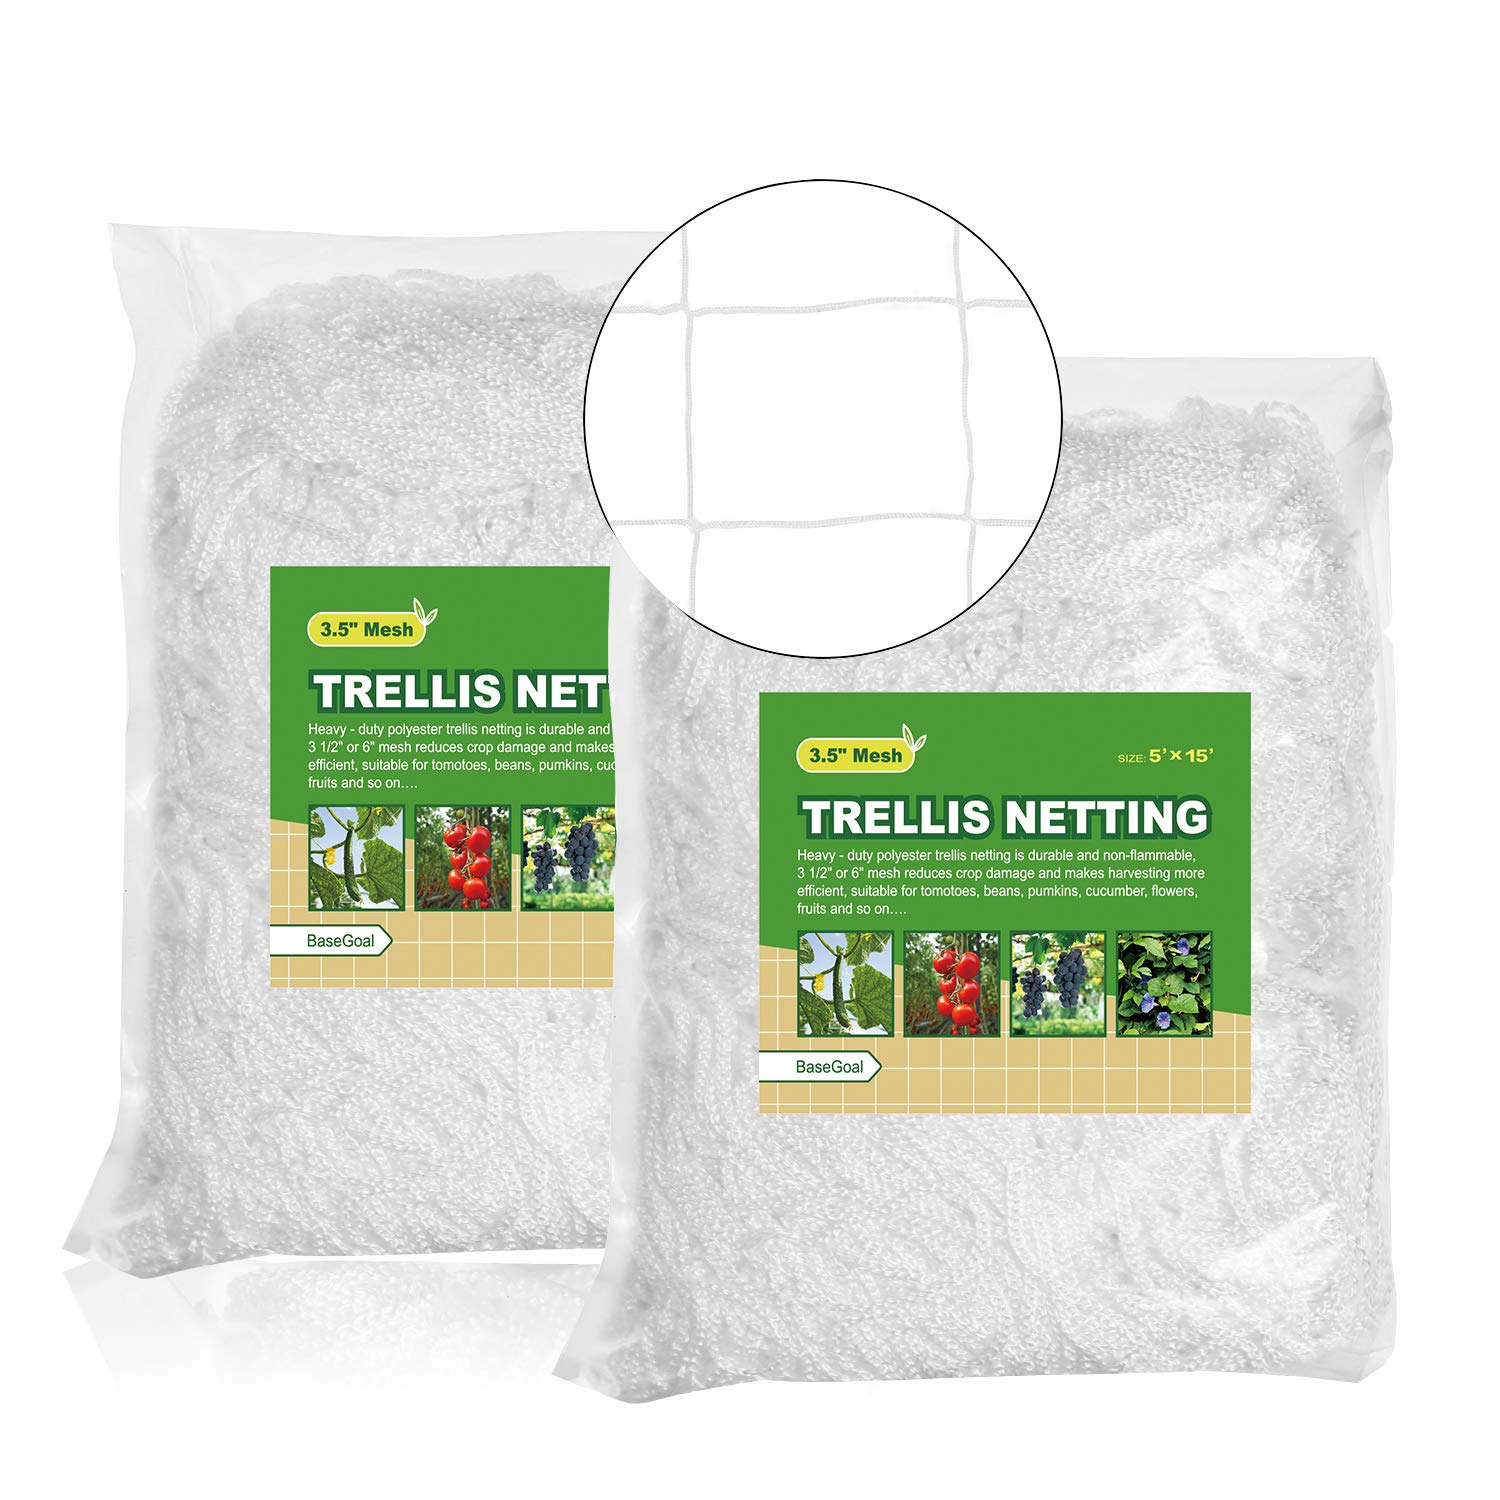 "BaseGoal All-Weather Trellis Netting Garden Vine Plant Growing Flexible String Net (3.5"" Mesh, 5' x 15'Size'-2Packs)"